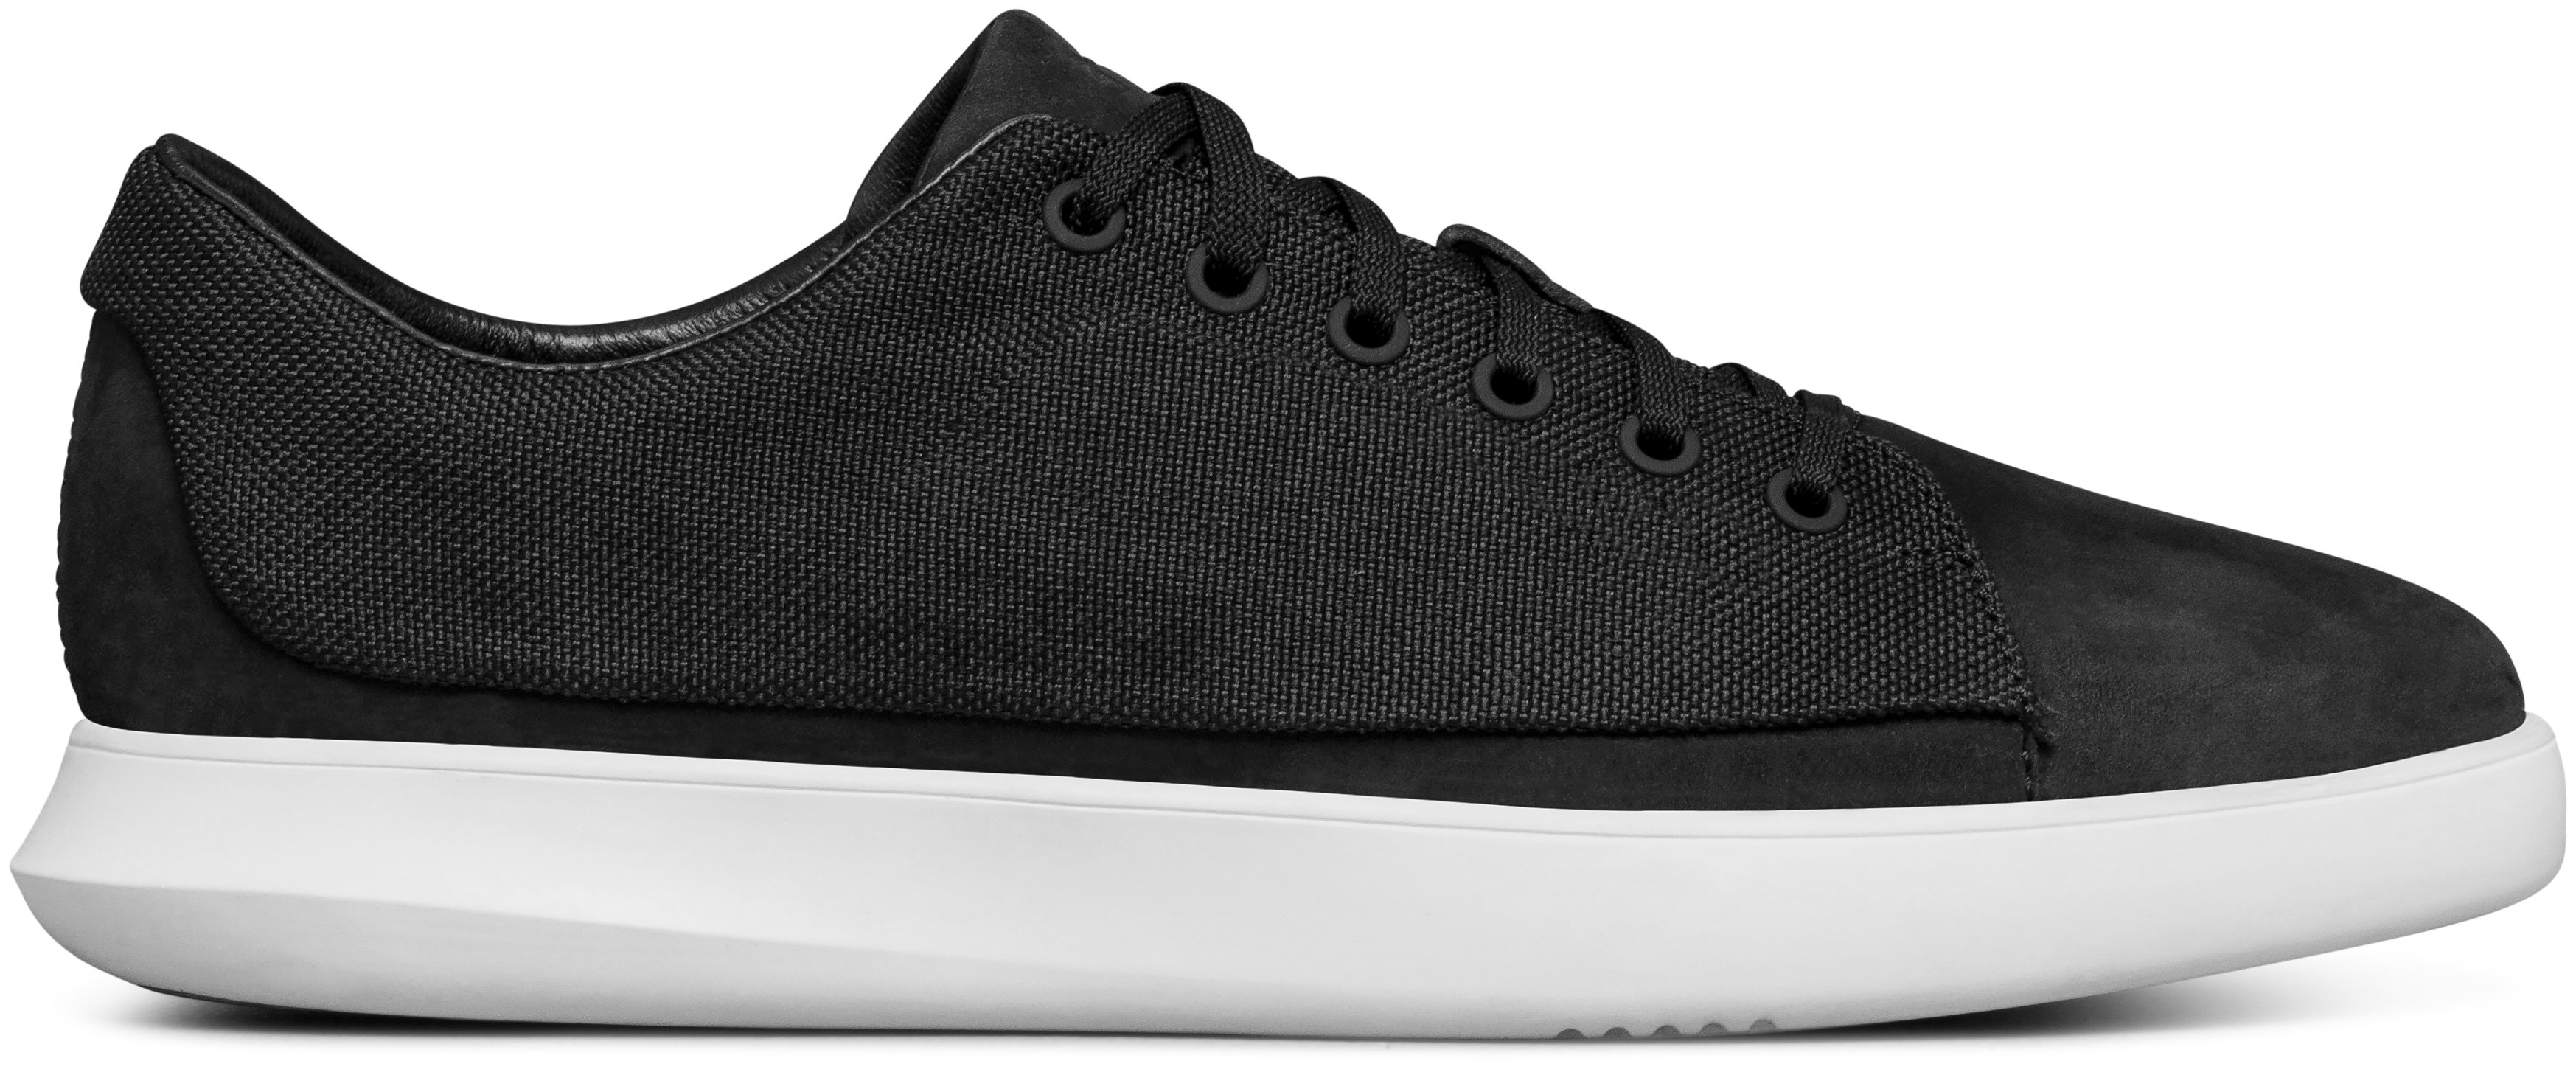 Men's UAS Club Low Canvas Shoes, Black